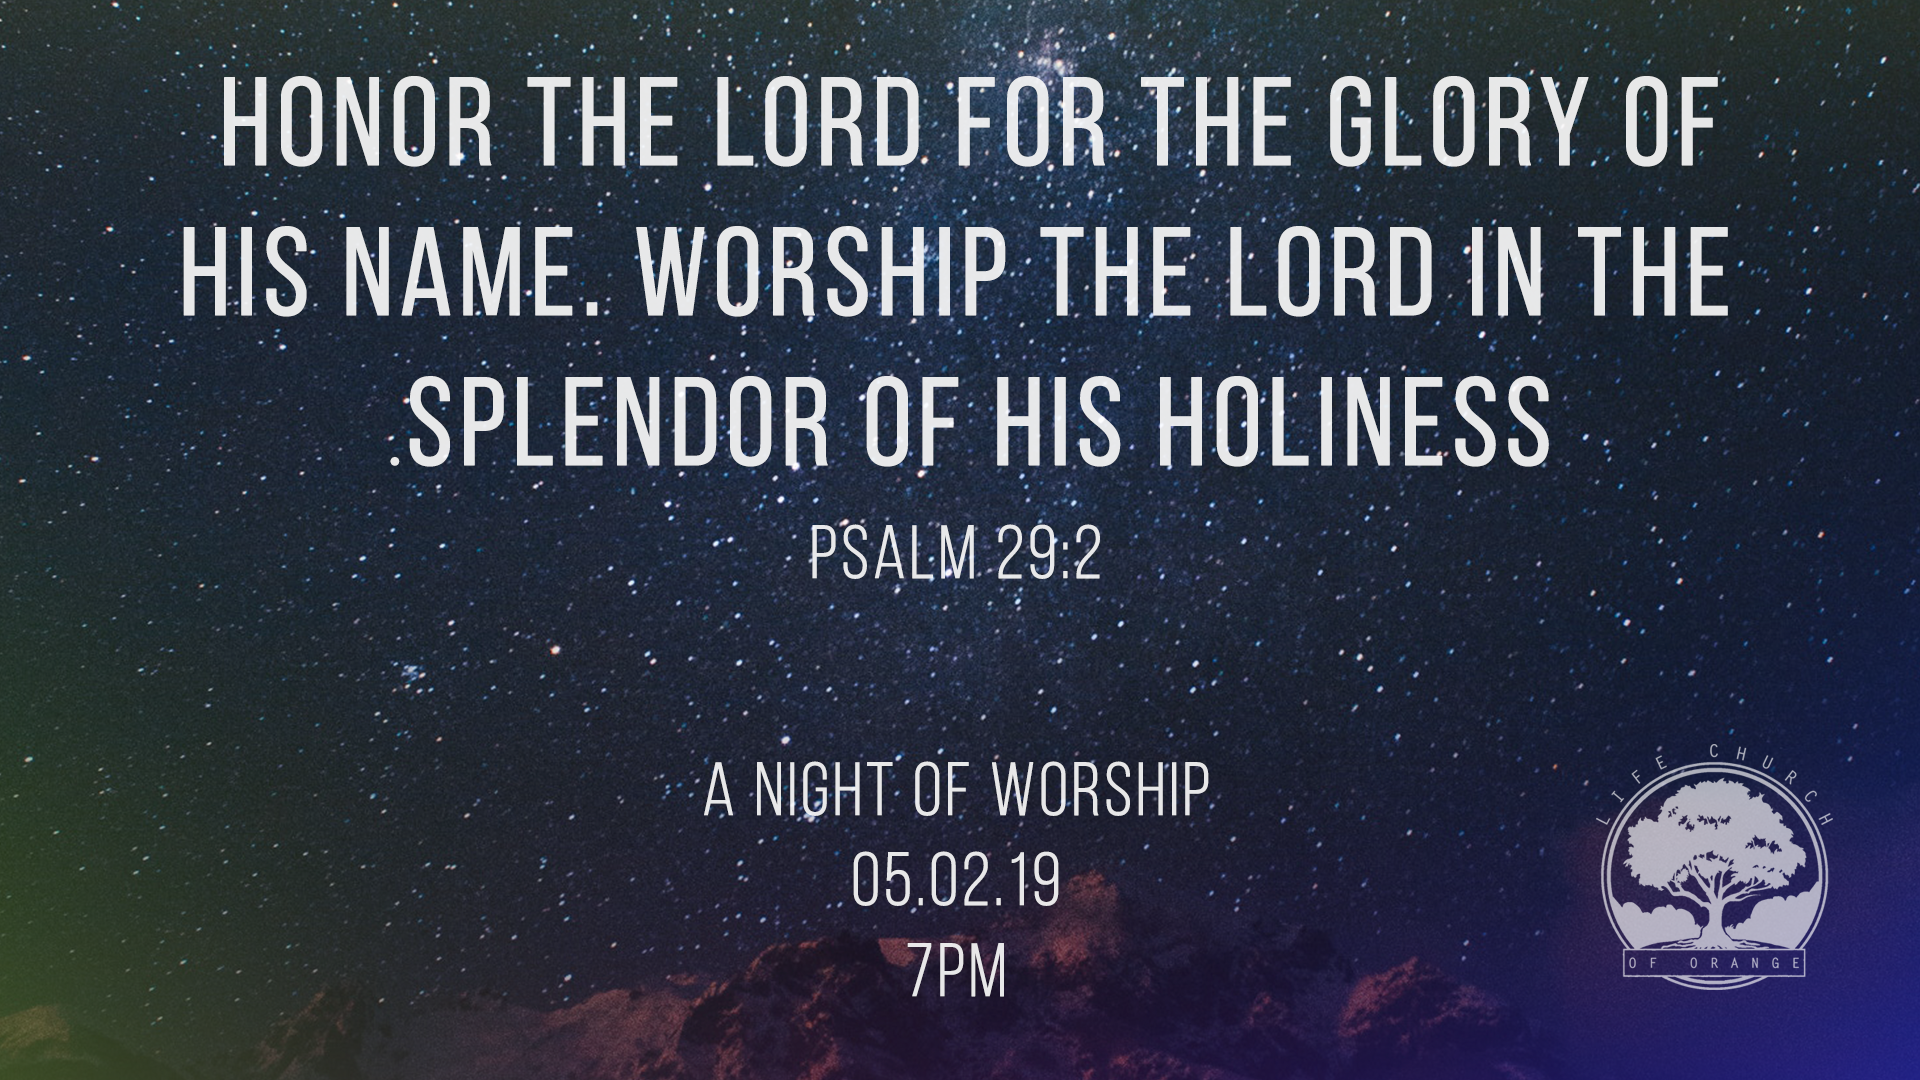 We invite you to join us for a night of worship, Thursday May 2 at 7 PM.